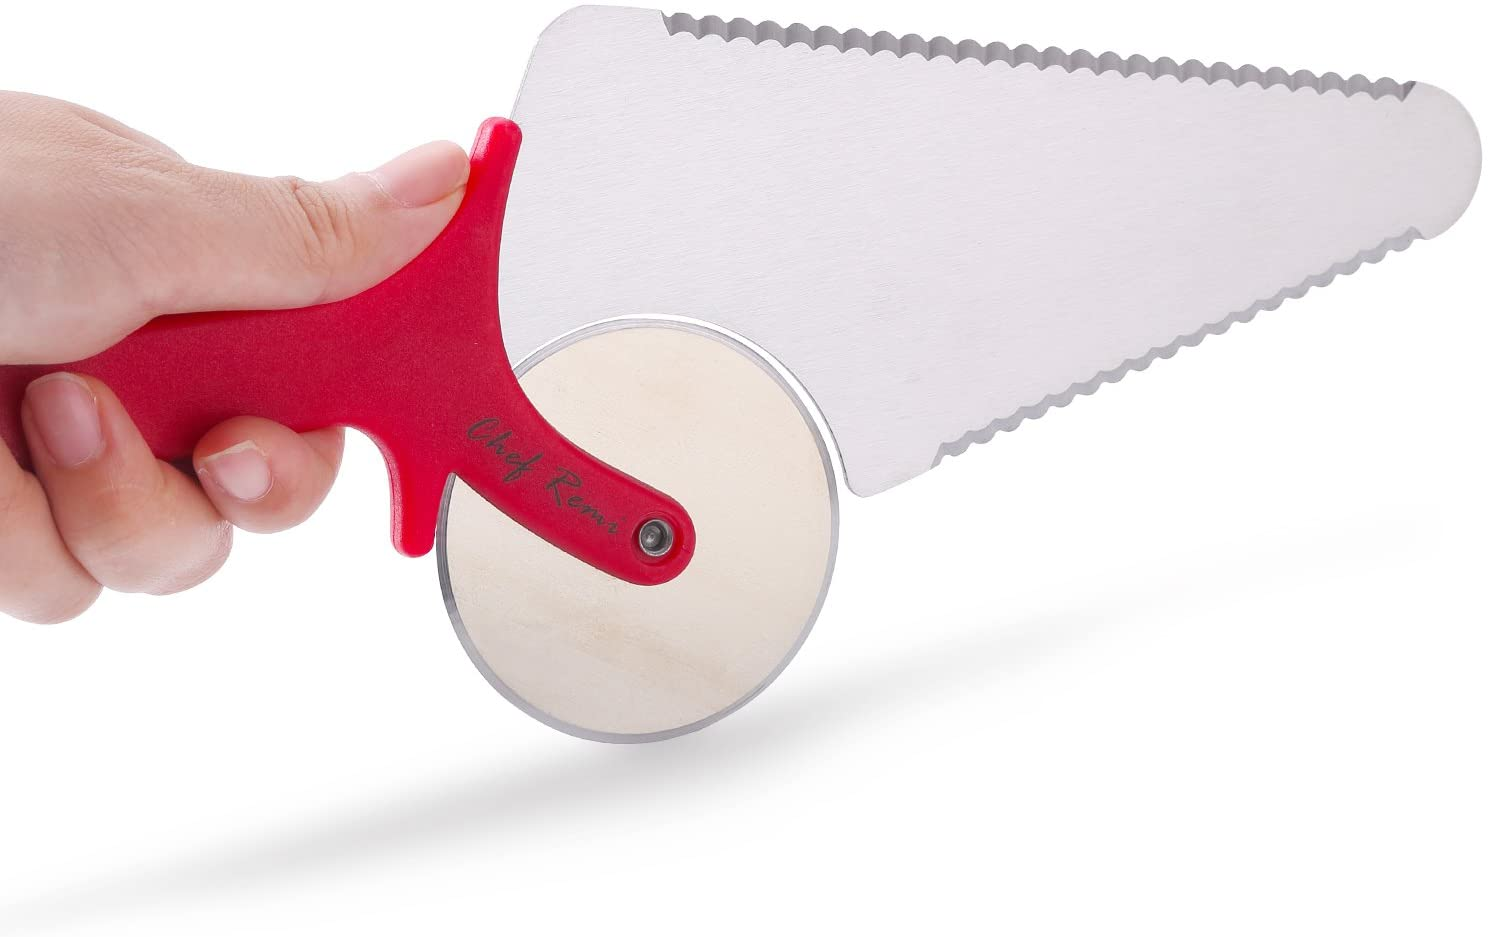 Latest Pizza Cutter -  Innovative 3-In-1 Pizza Cutter To Use On Pizza Stone, Pan Or Cutting Board - Super Sharp Stainle